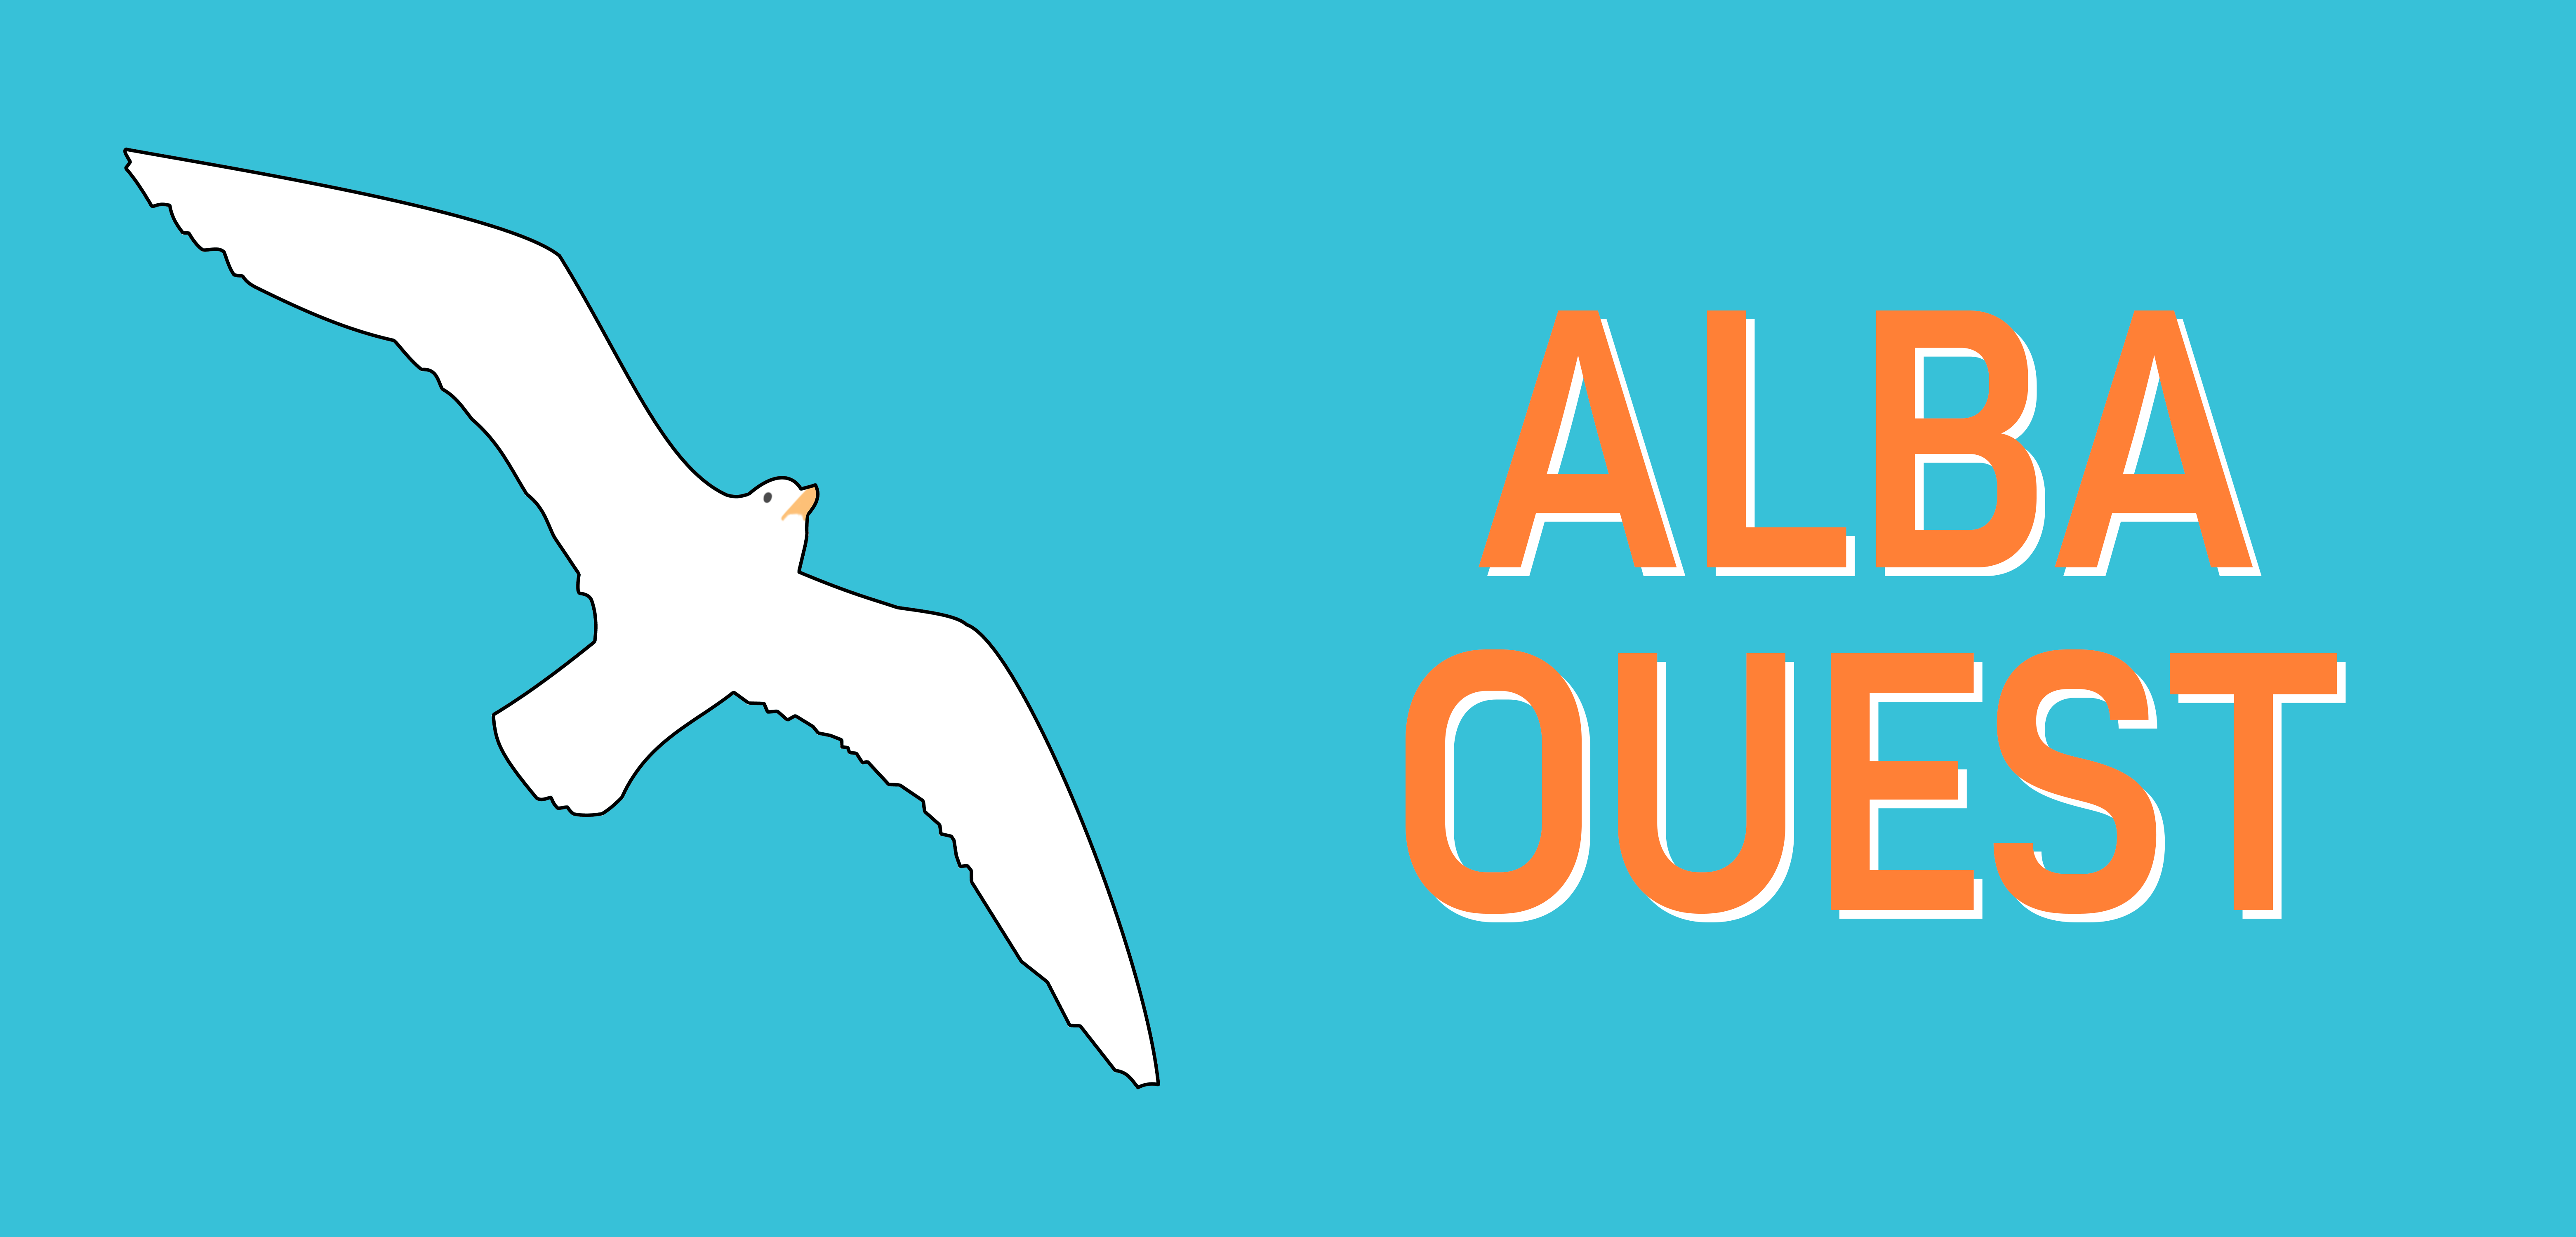 ALBA OUEST